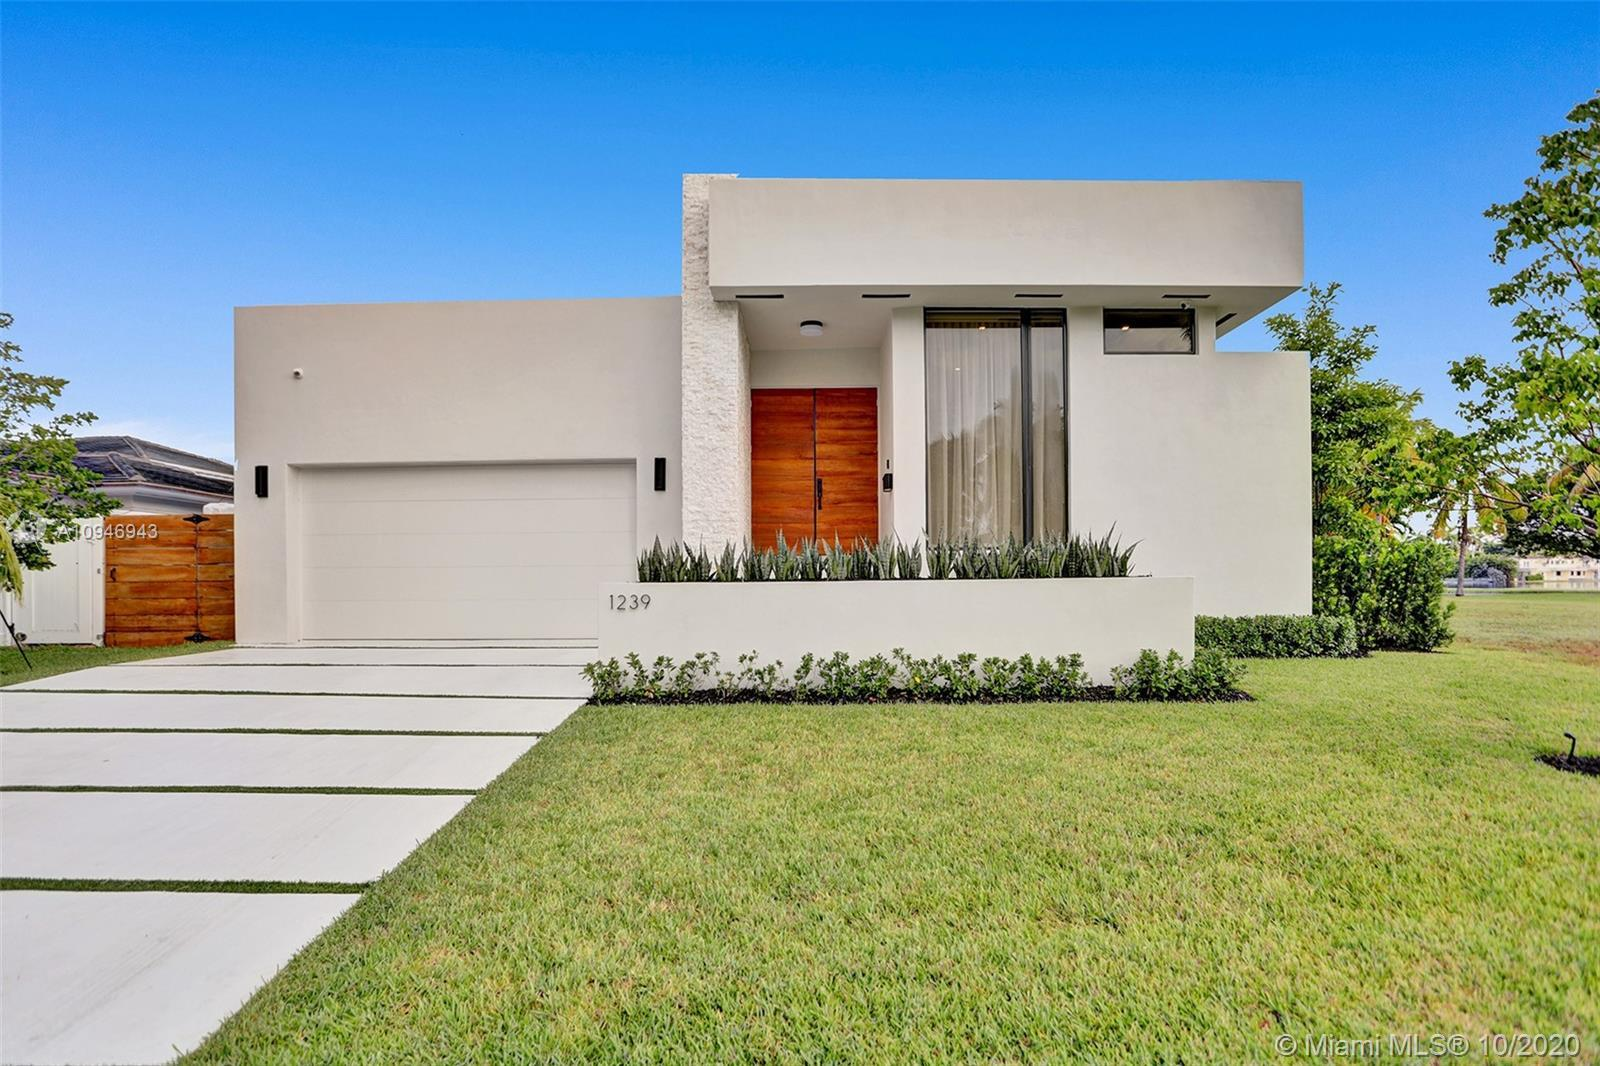 Brand-new, custom-built, modern designer home, in the heart of Southlake. Wide open spaces with 10 f